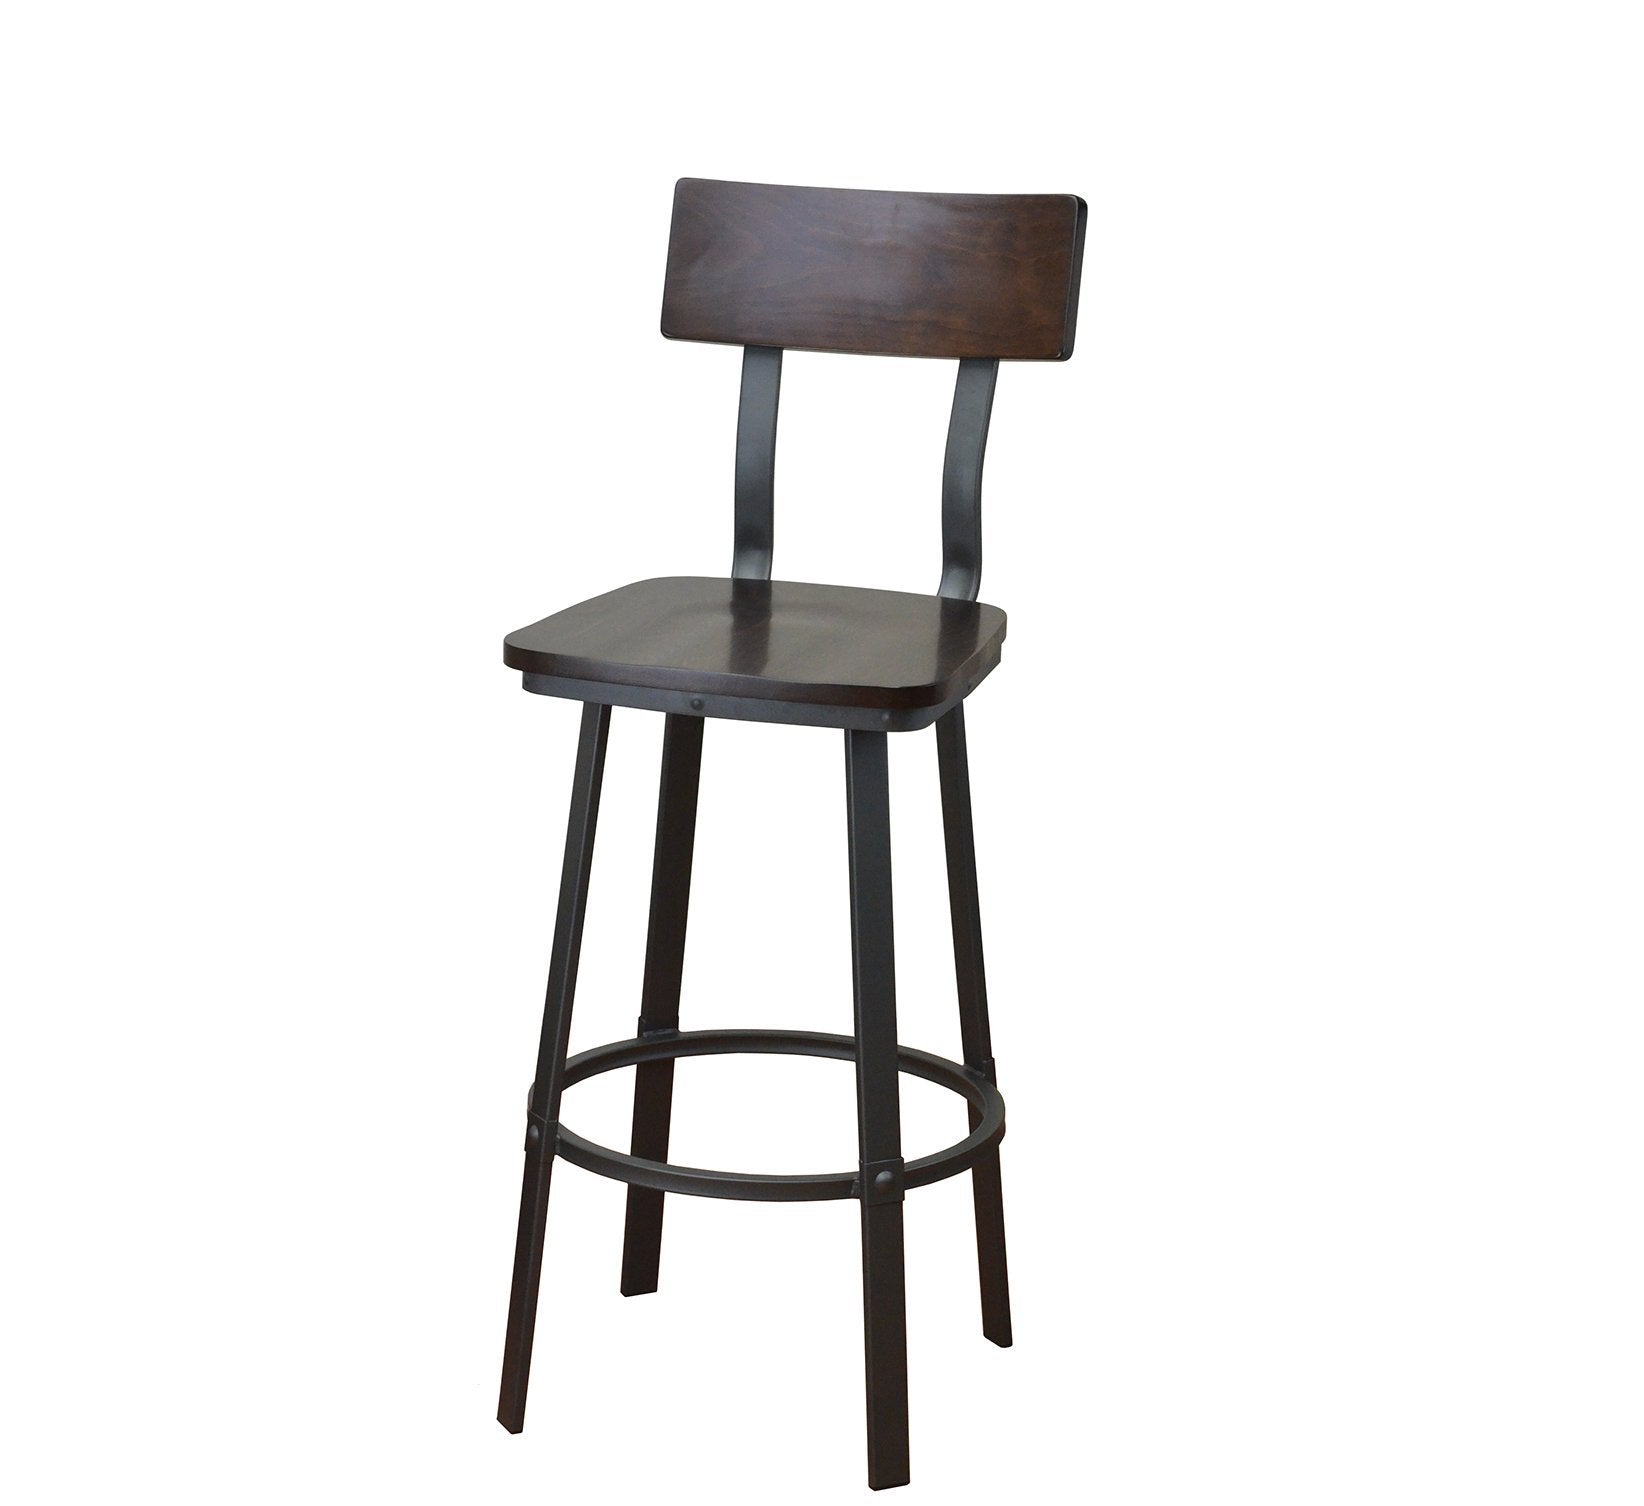 DHC 1544B Steel Barstool, Dark Grey Color Finish